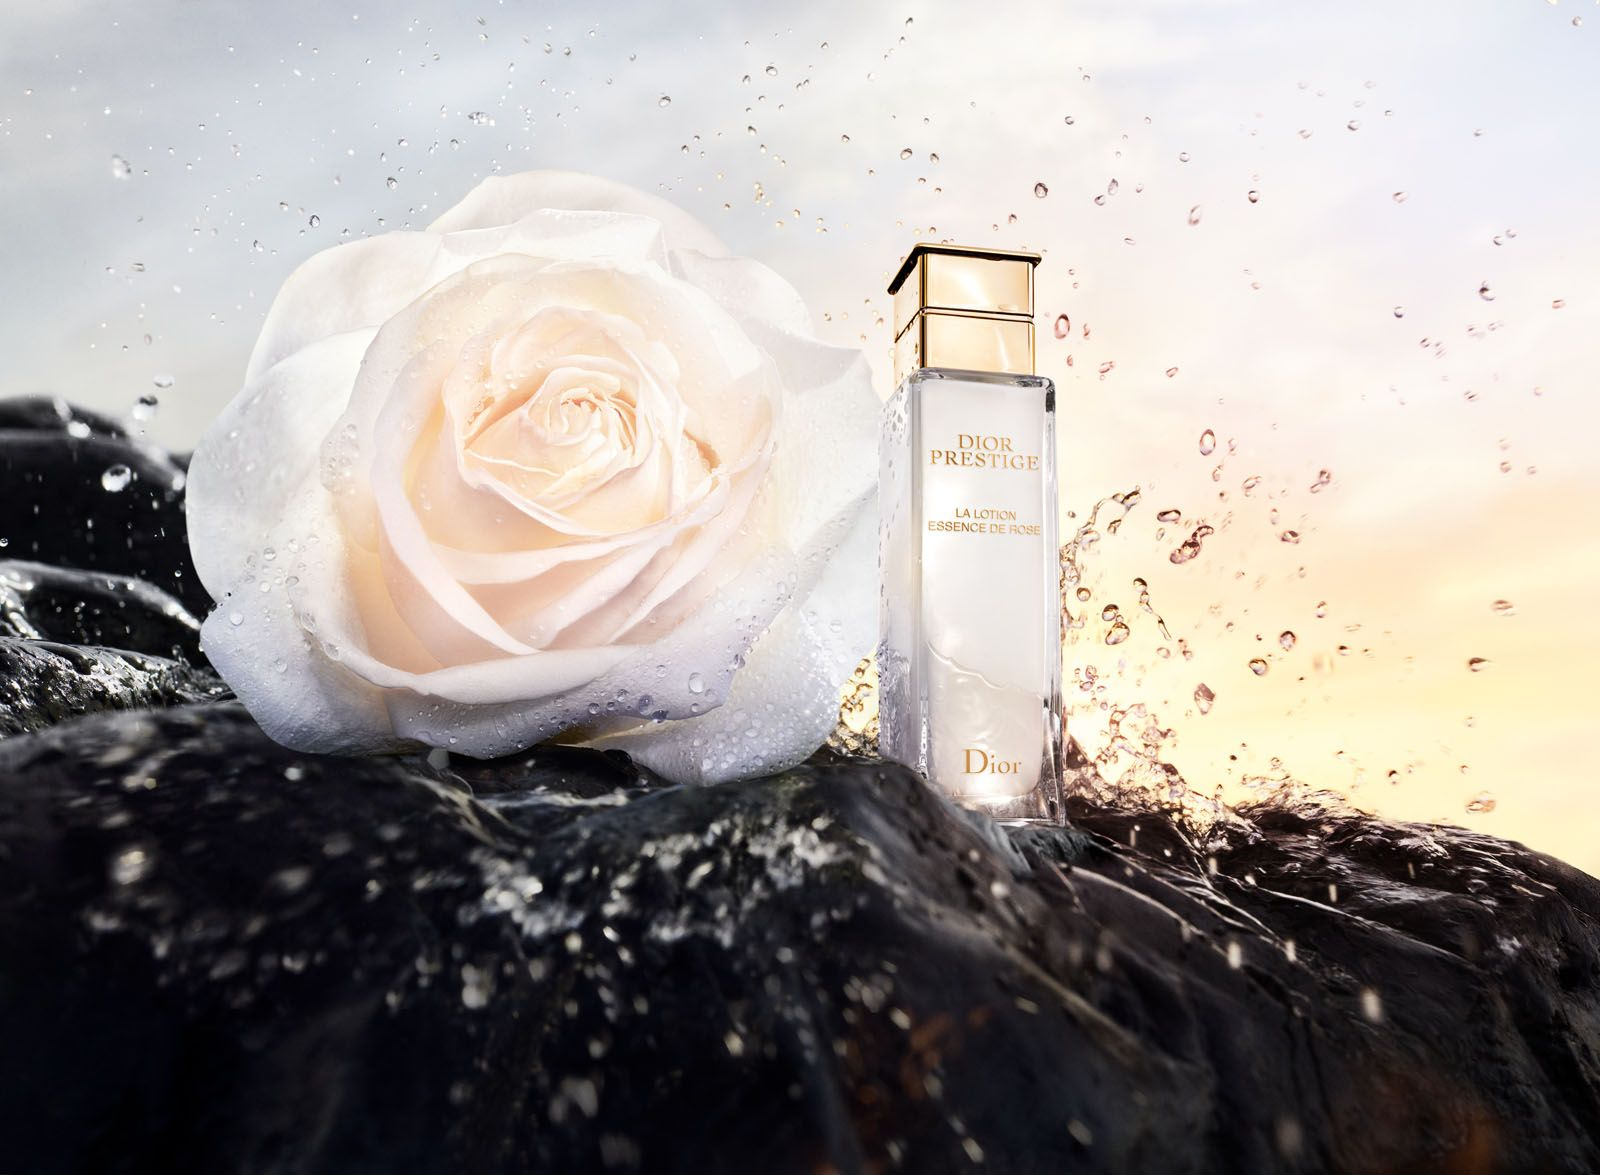 The Dior Prestige Lotion Essence de Rose is composed of a blend of the rose de Granville and its bud, a brand-new concoction derived by Dior Science